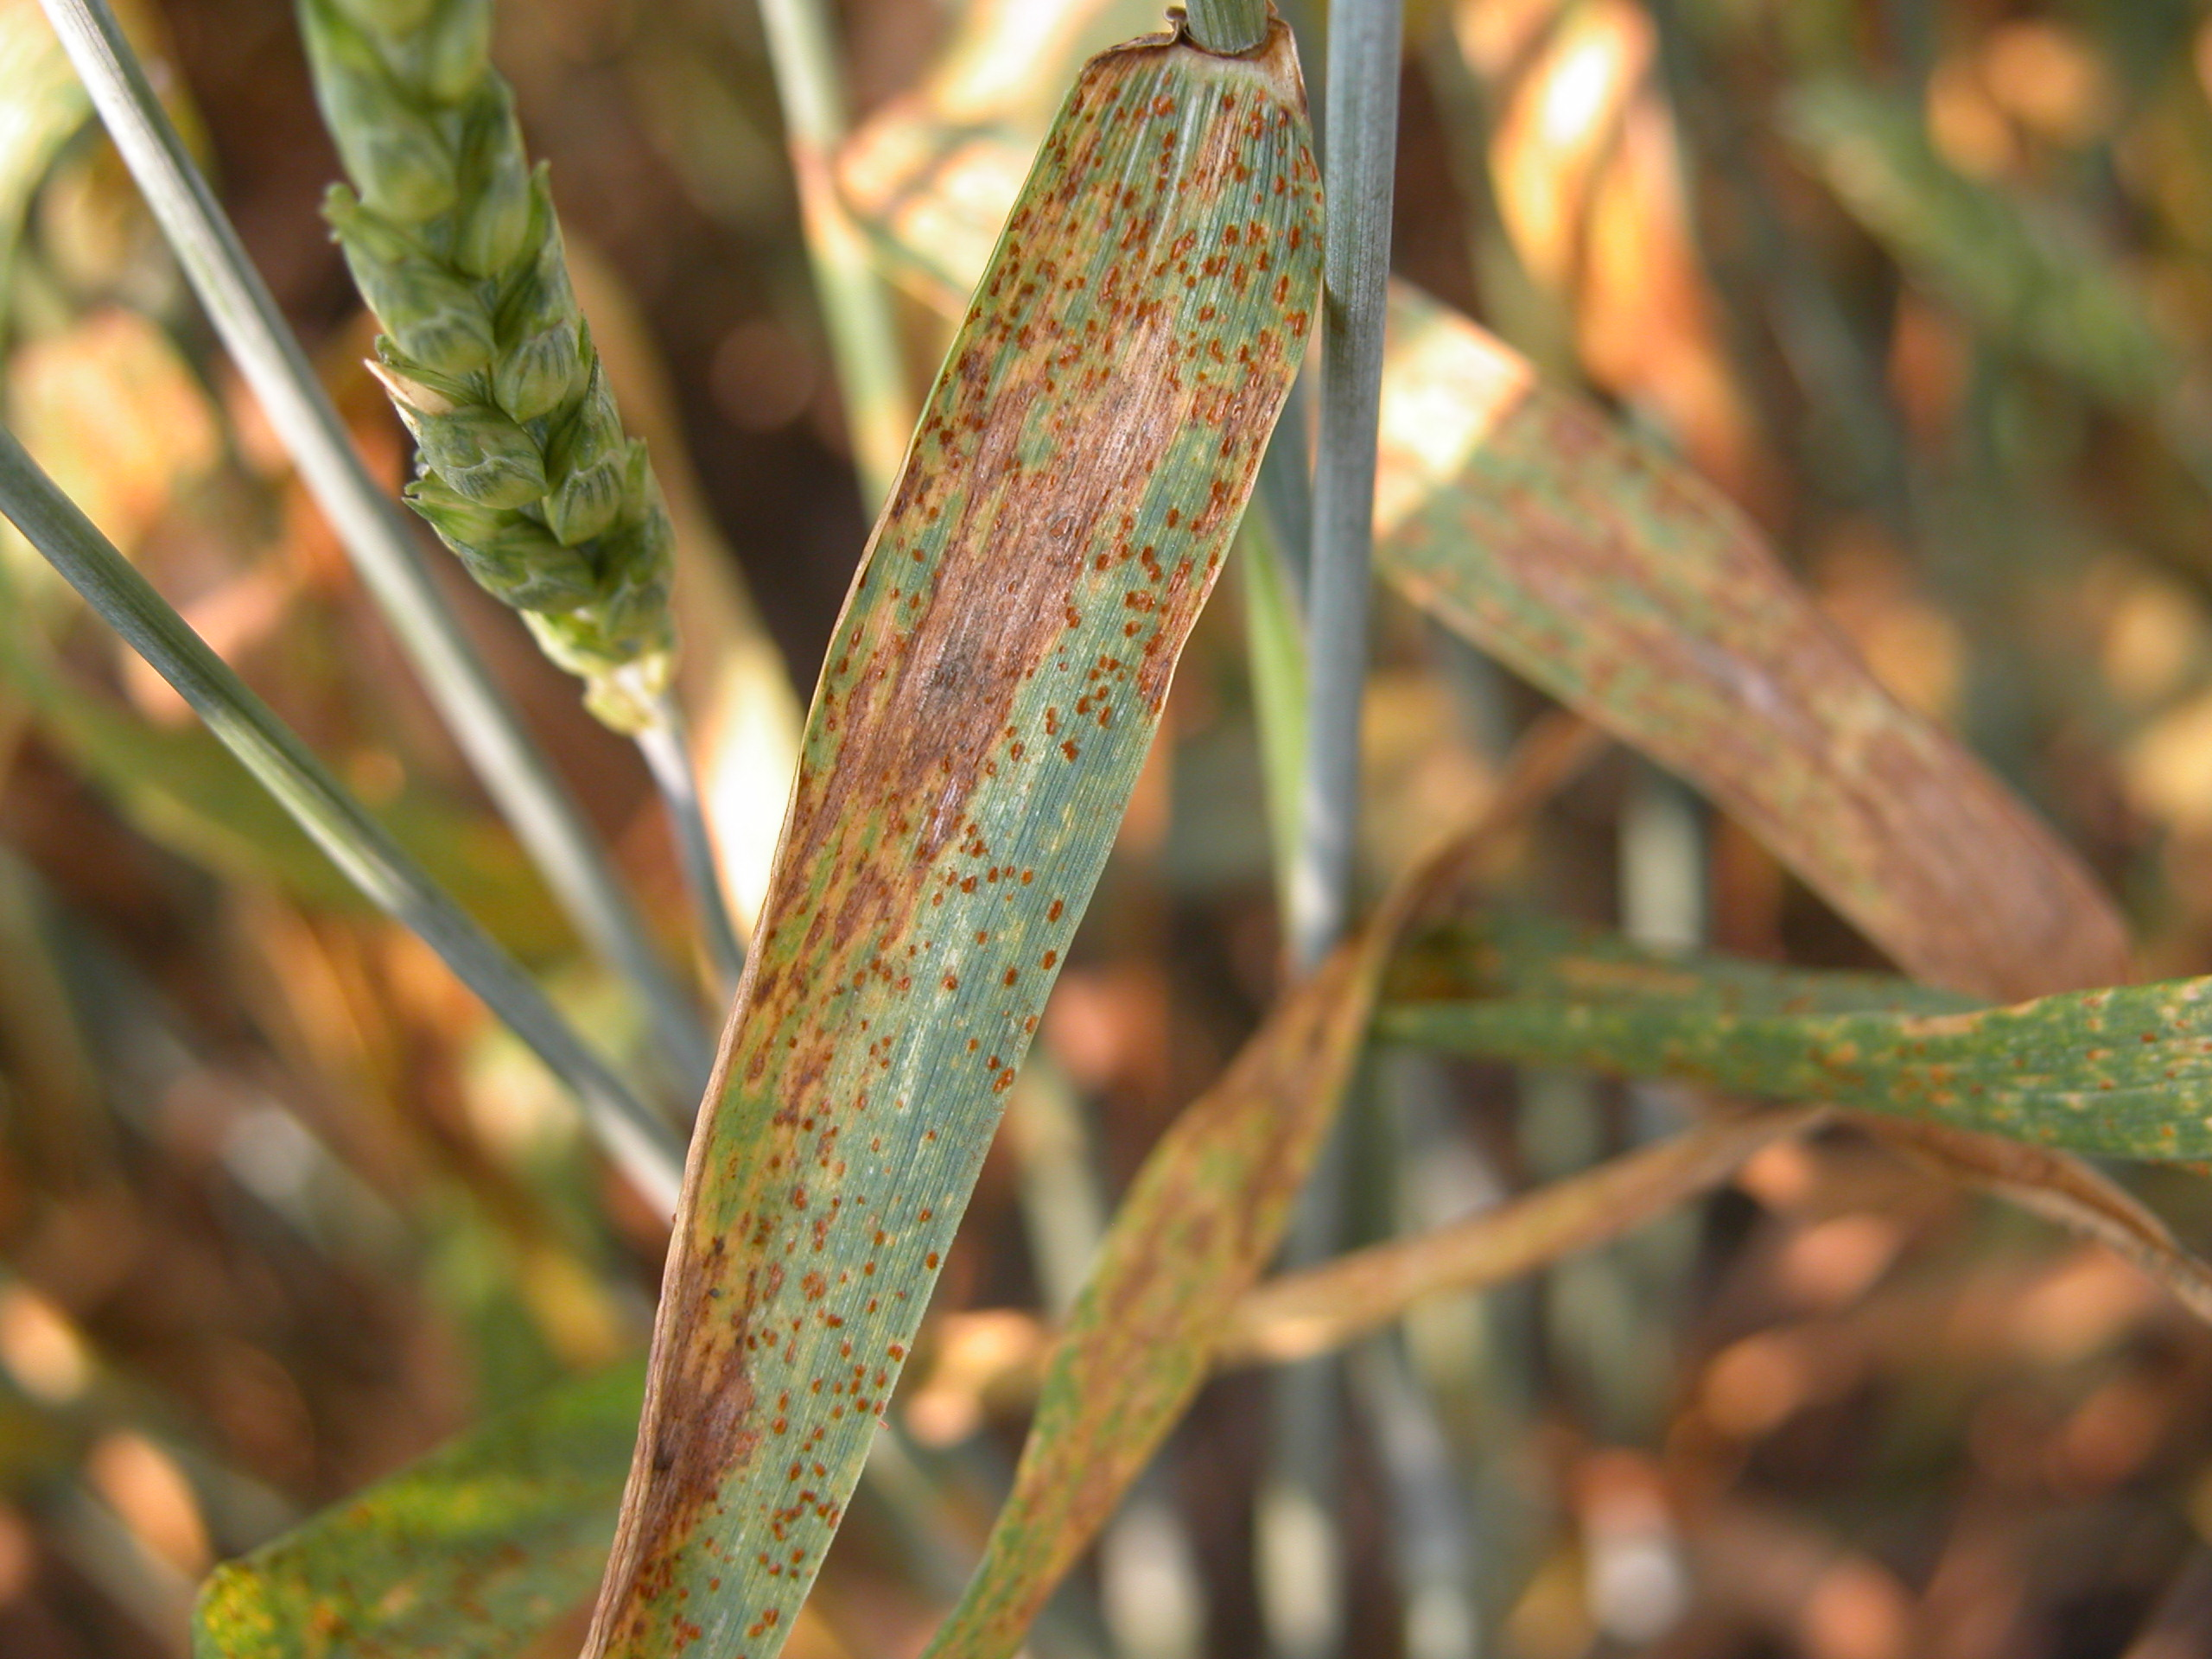 Leaf rust pustules contain orange-brown, rusty colored spores.